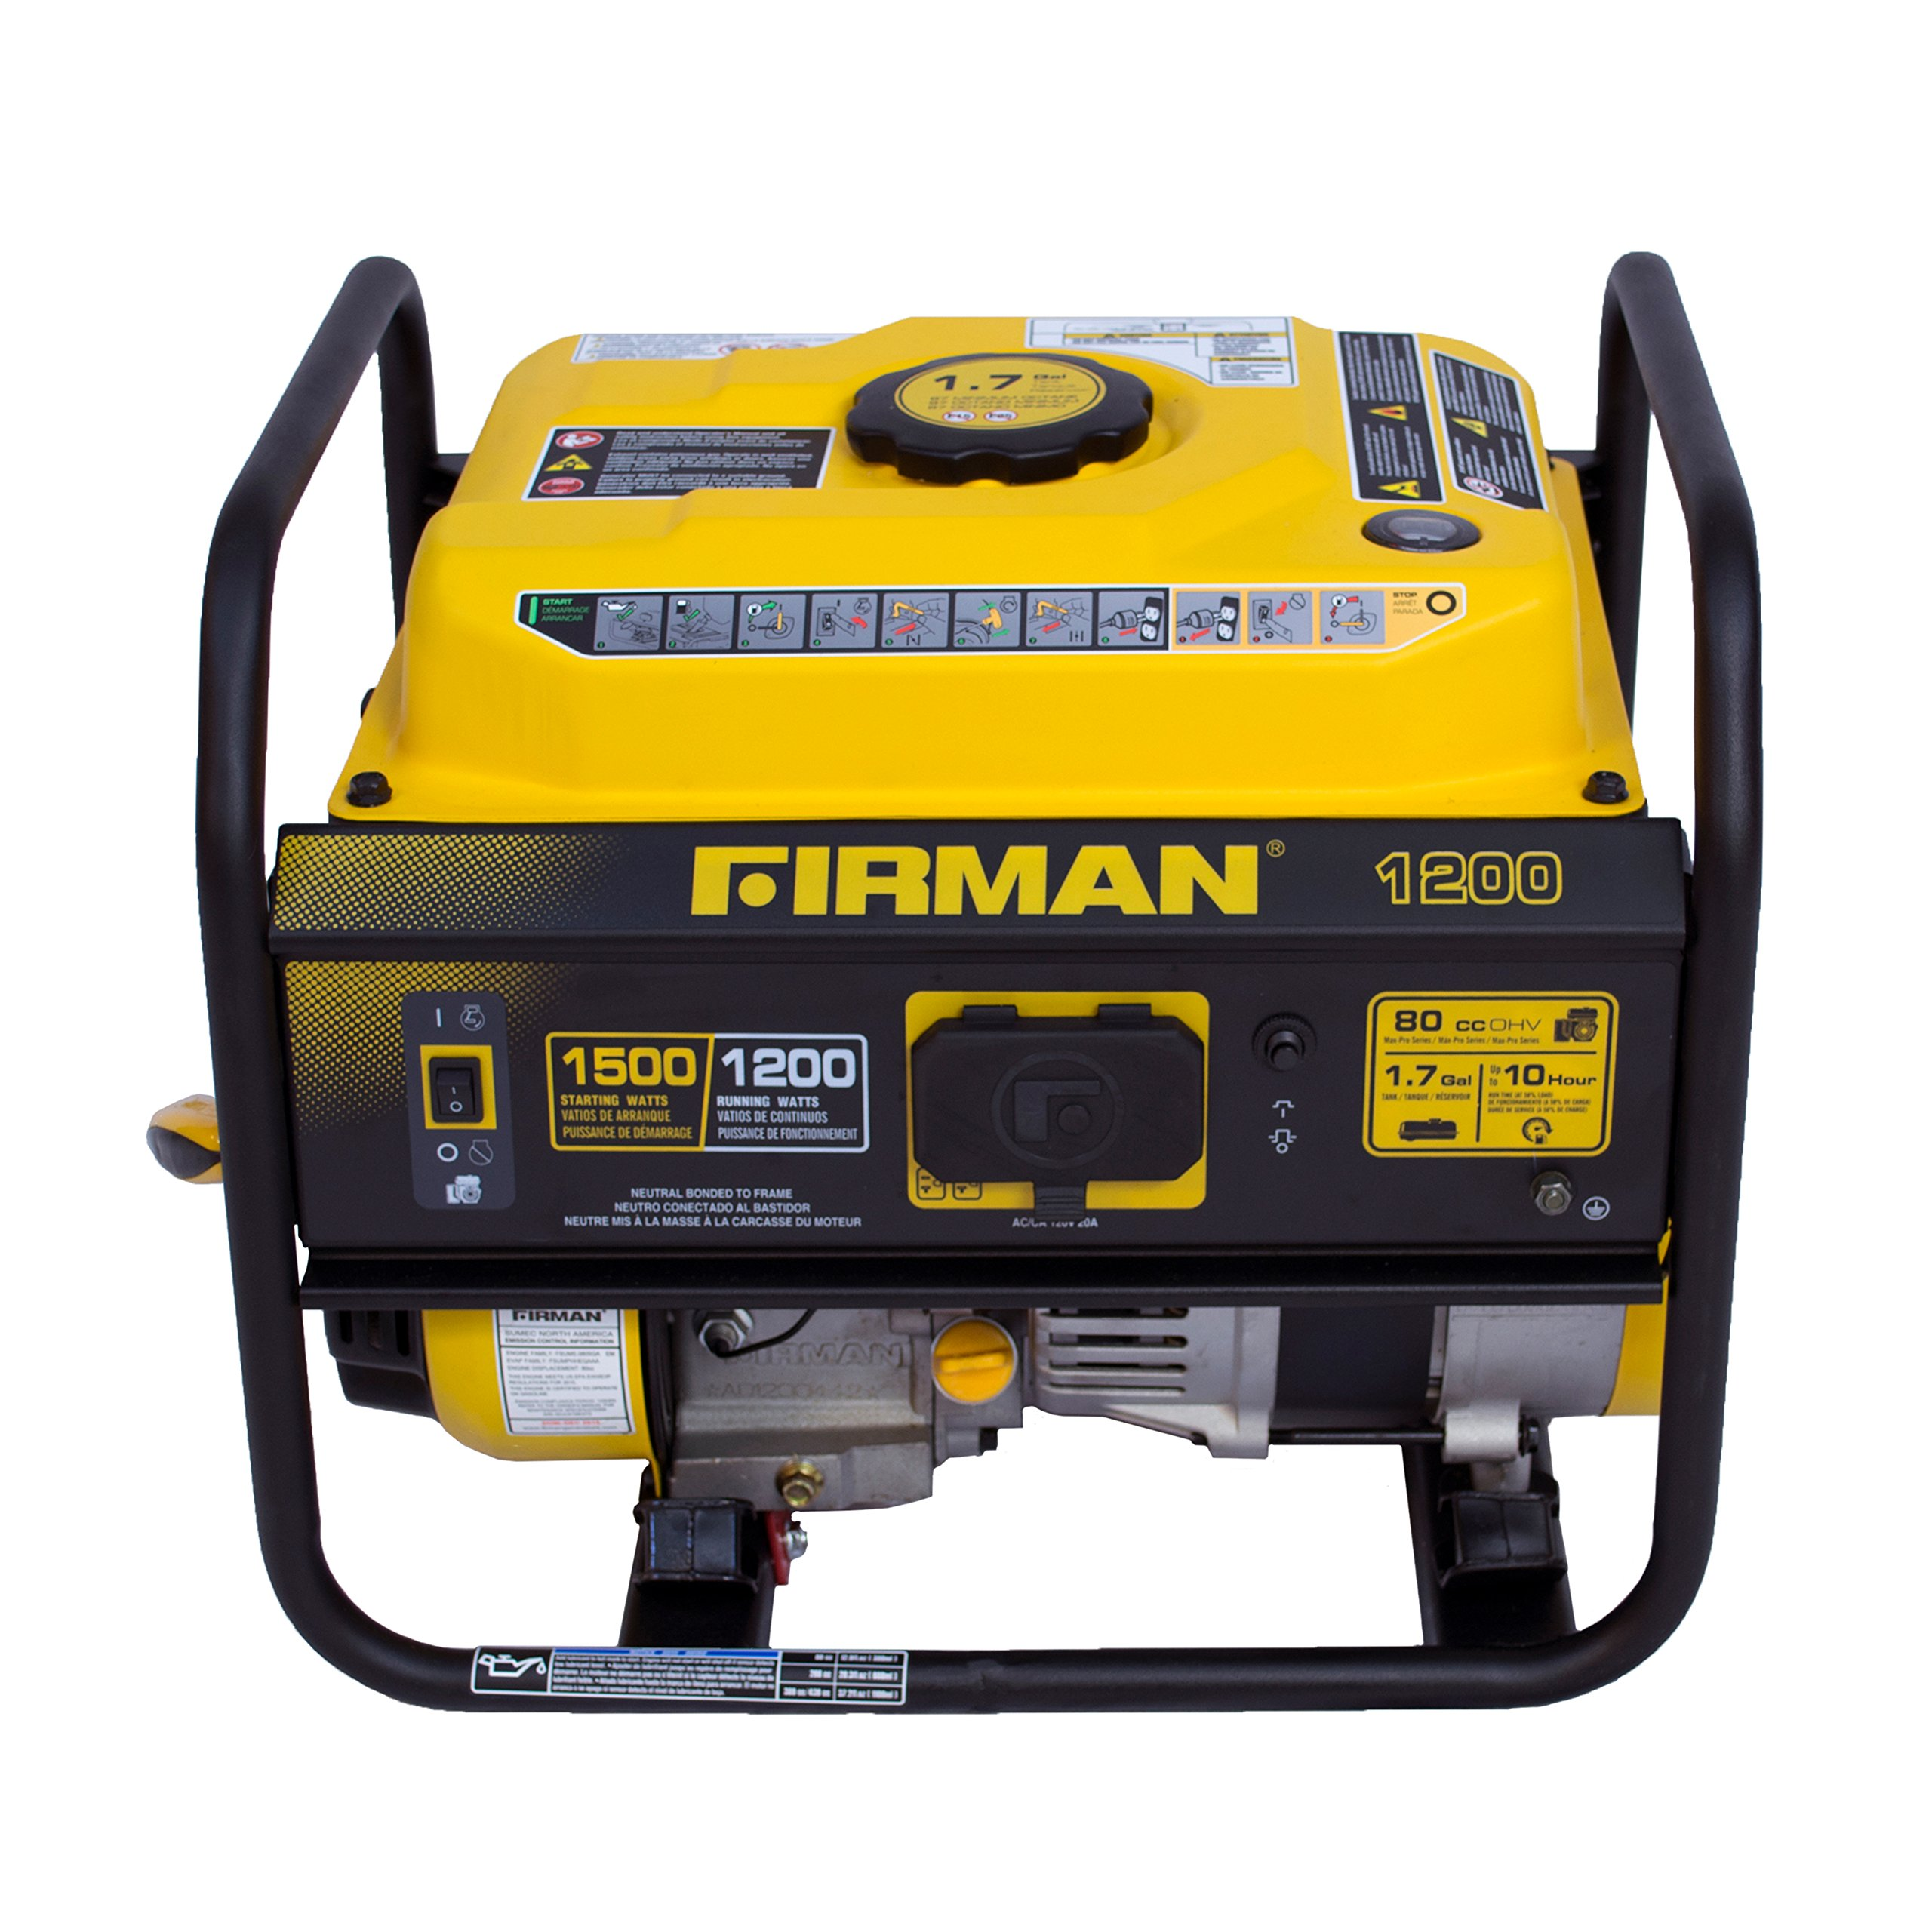 Firman P01201 1500/1200 Watt Recoil Start Gas Portable Generator cETL and CARB Certified, Black by Firman